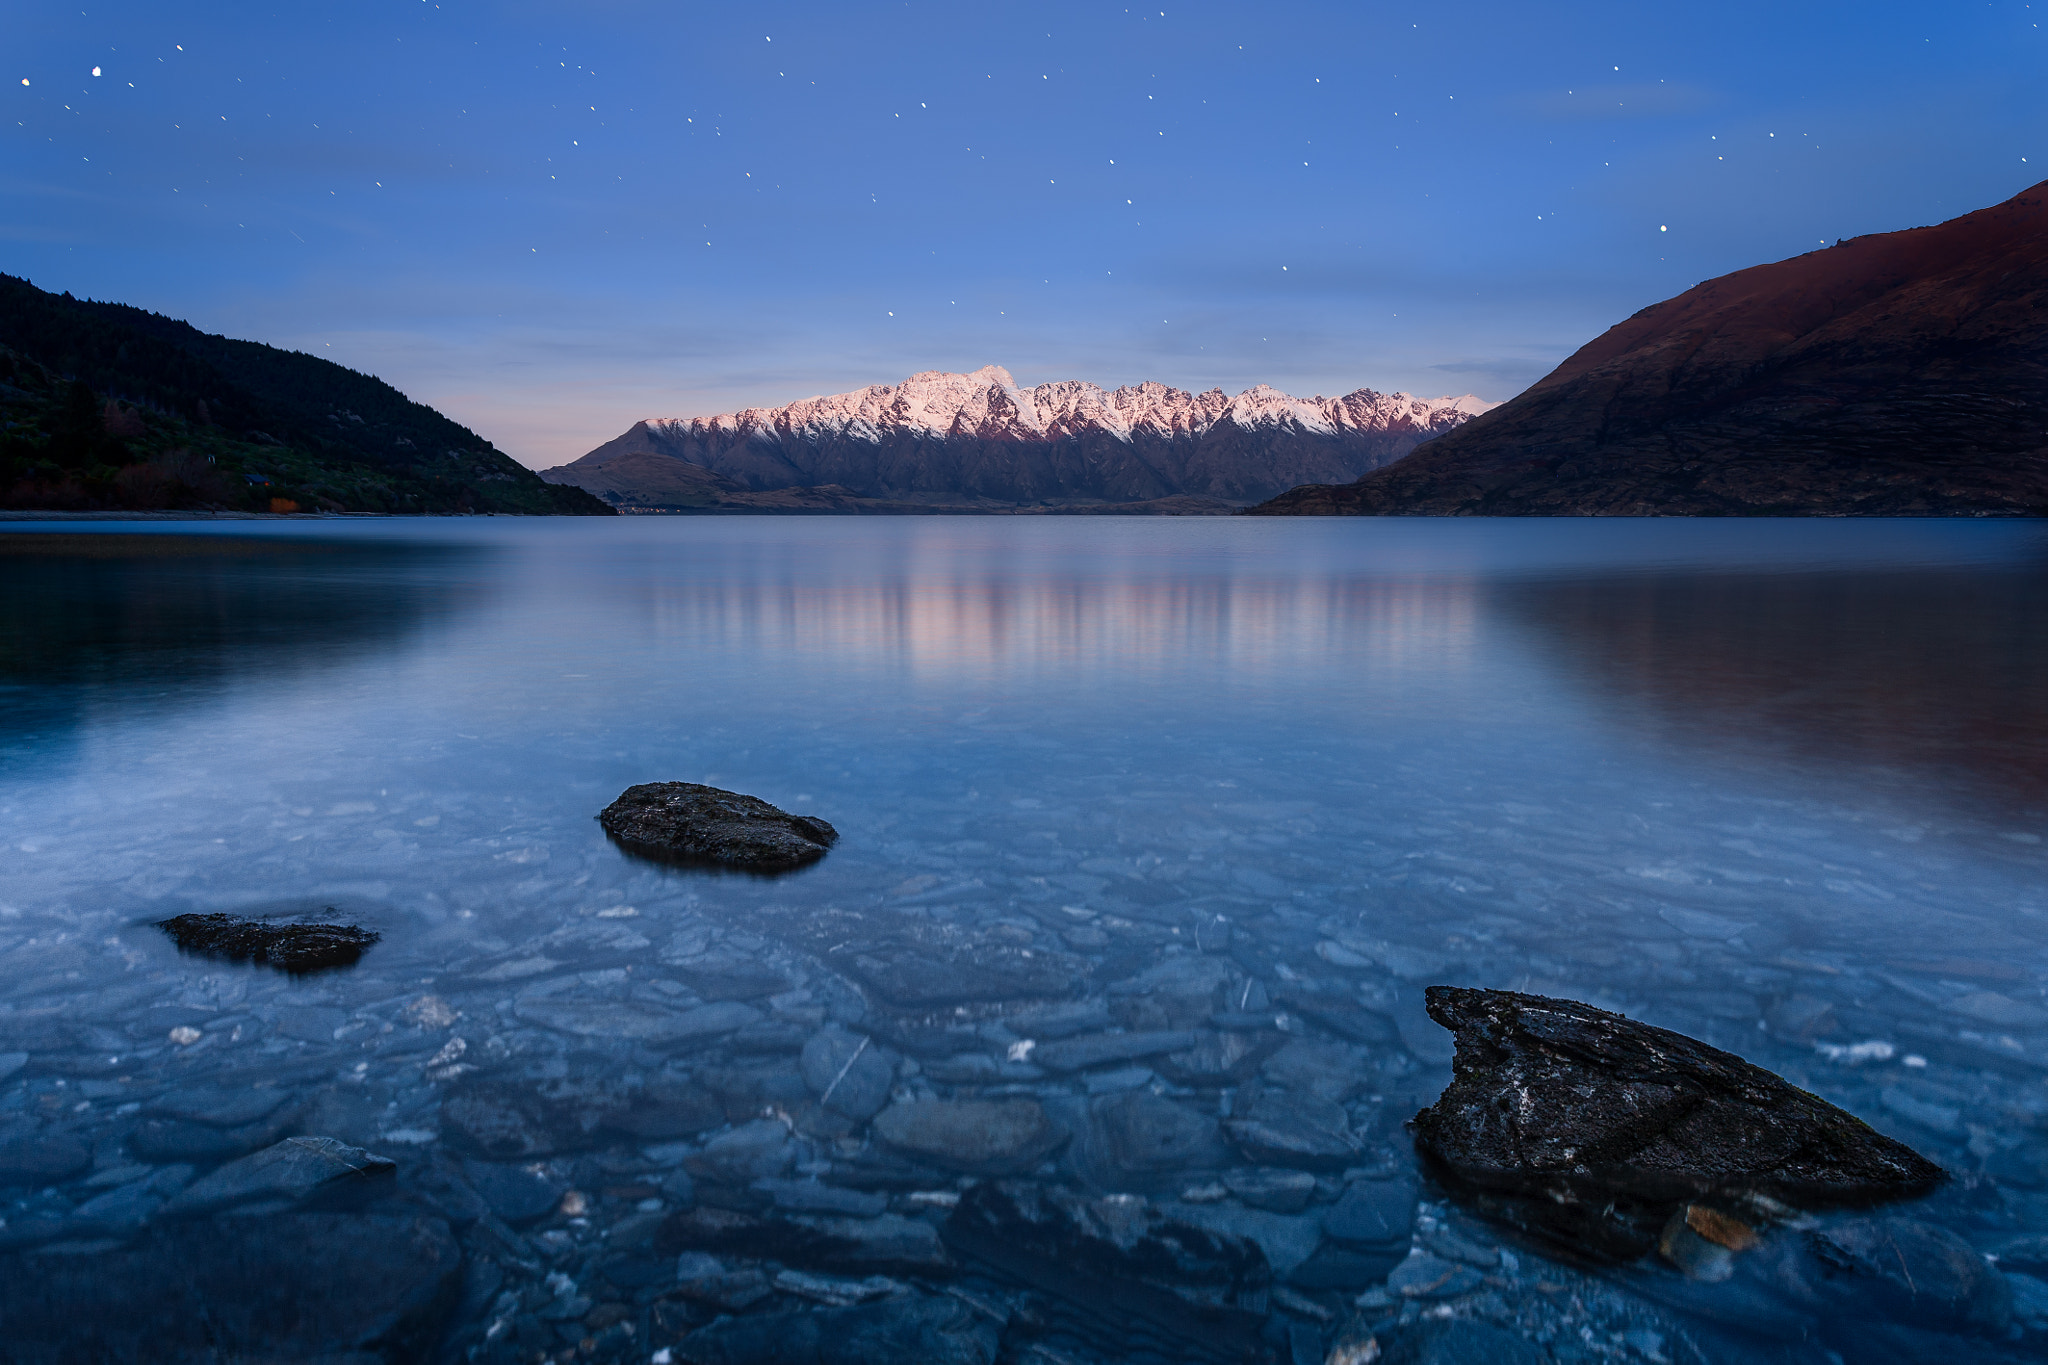 Photograph Remarkables at Night by Paul Simpson on 500px